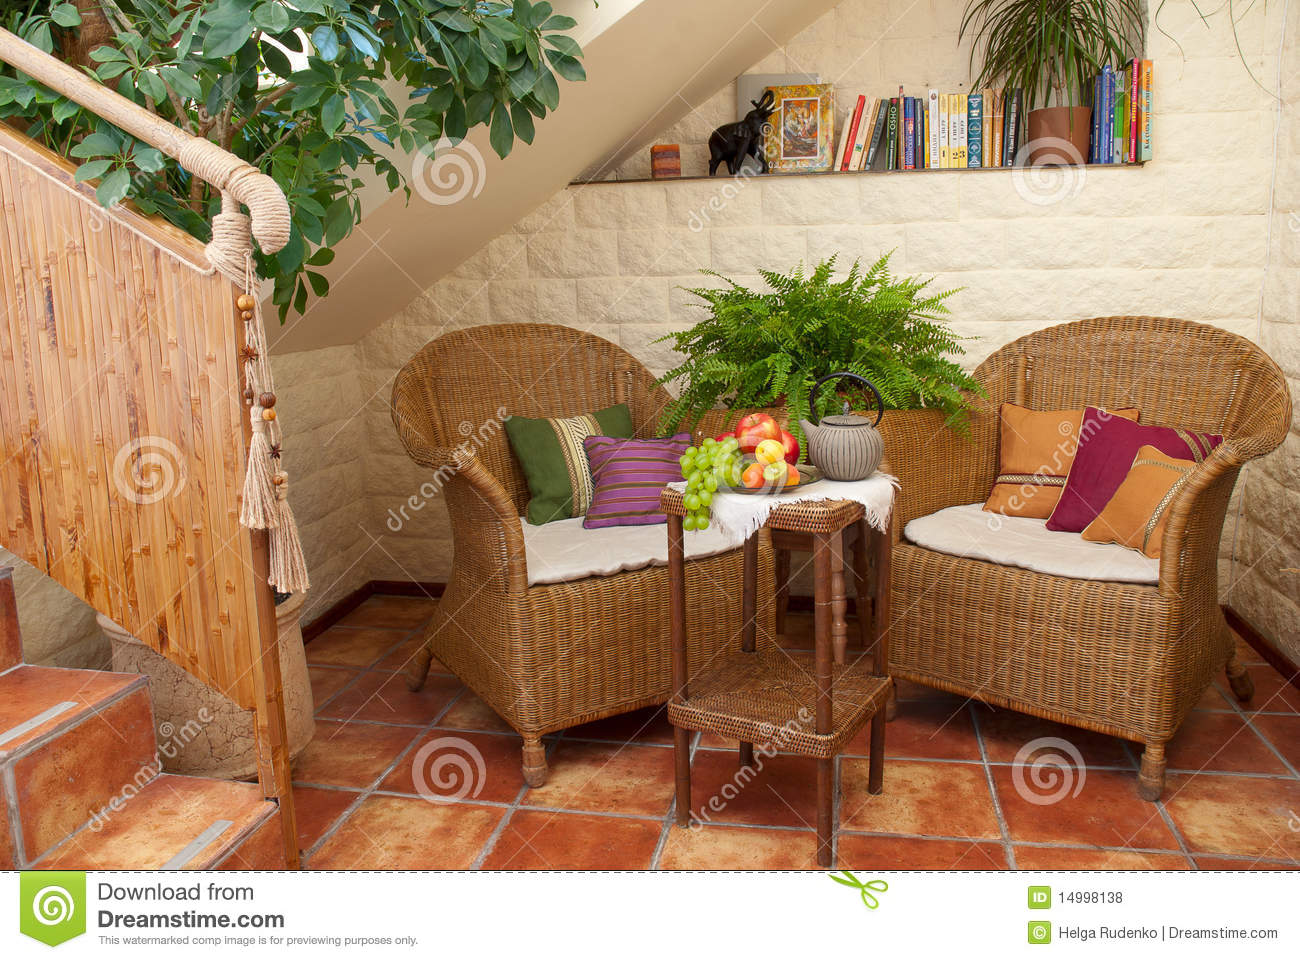 Artistic garden furniture on patio royalty free stock - Sofas de mimbre ...